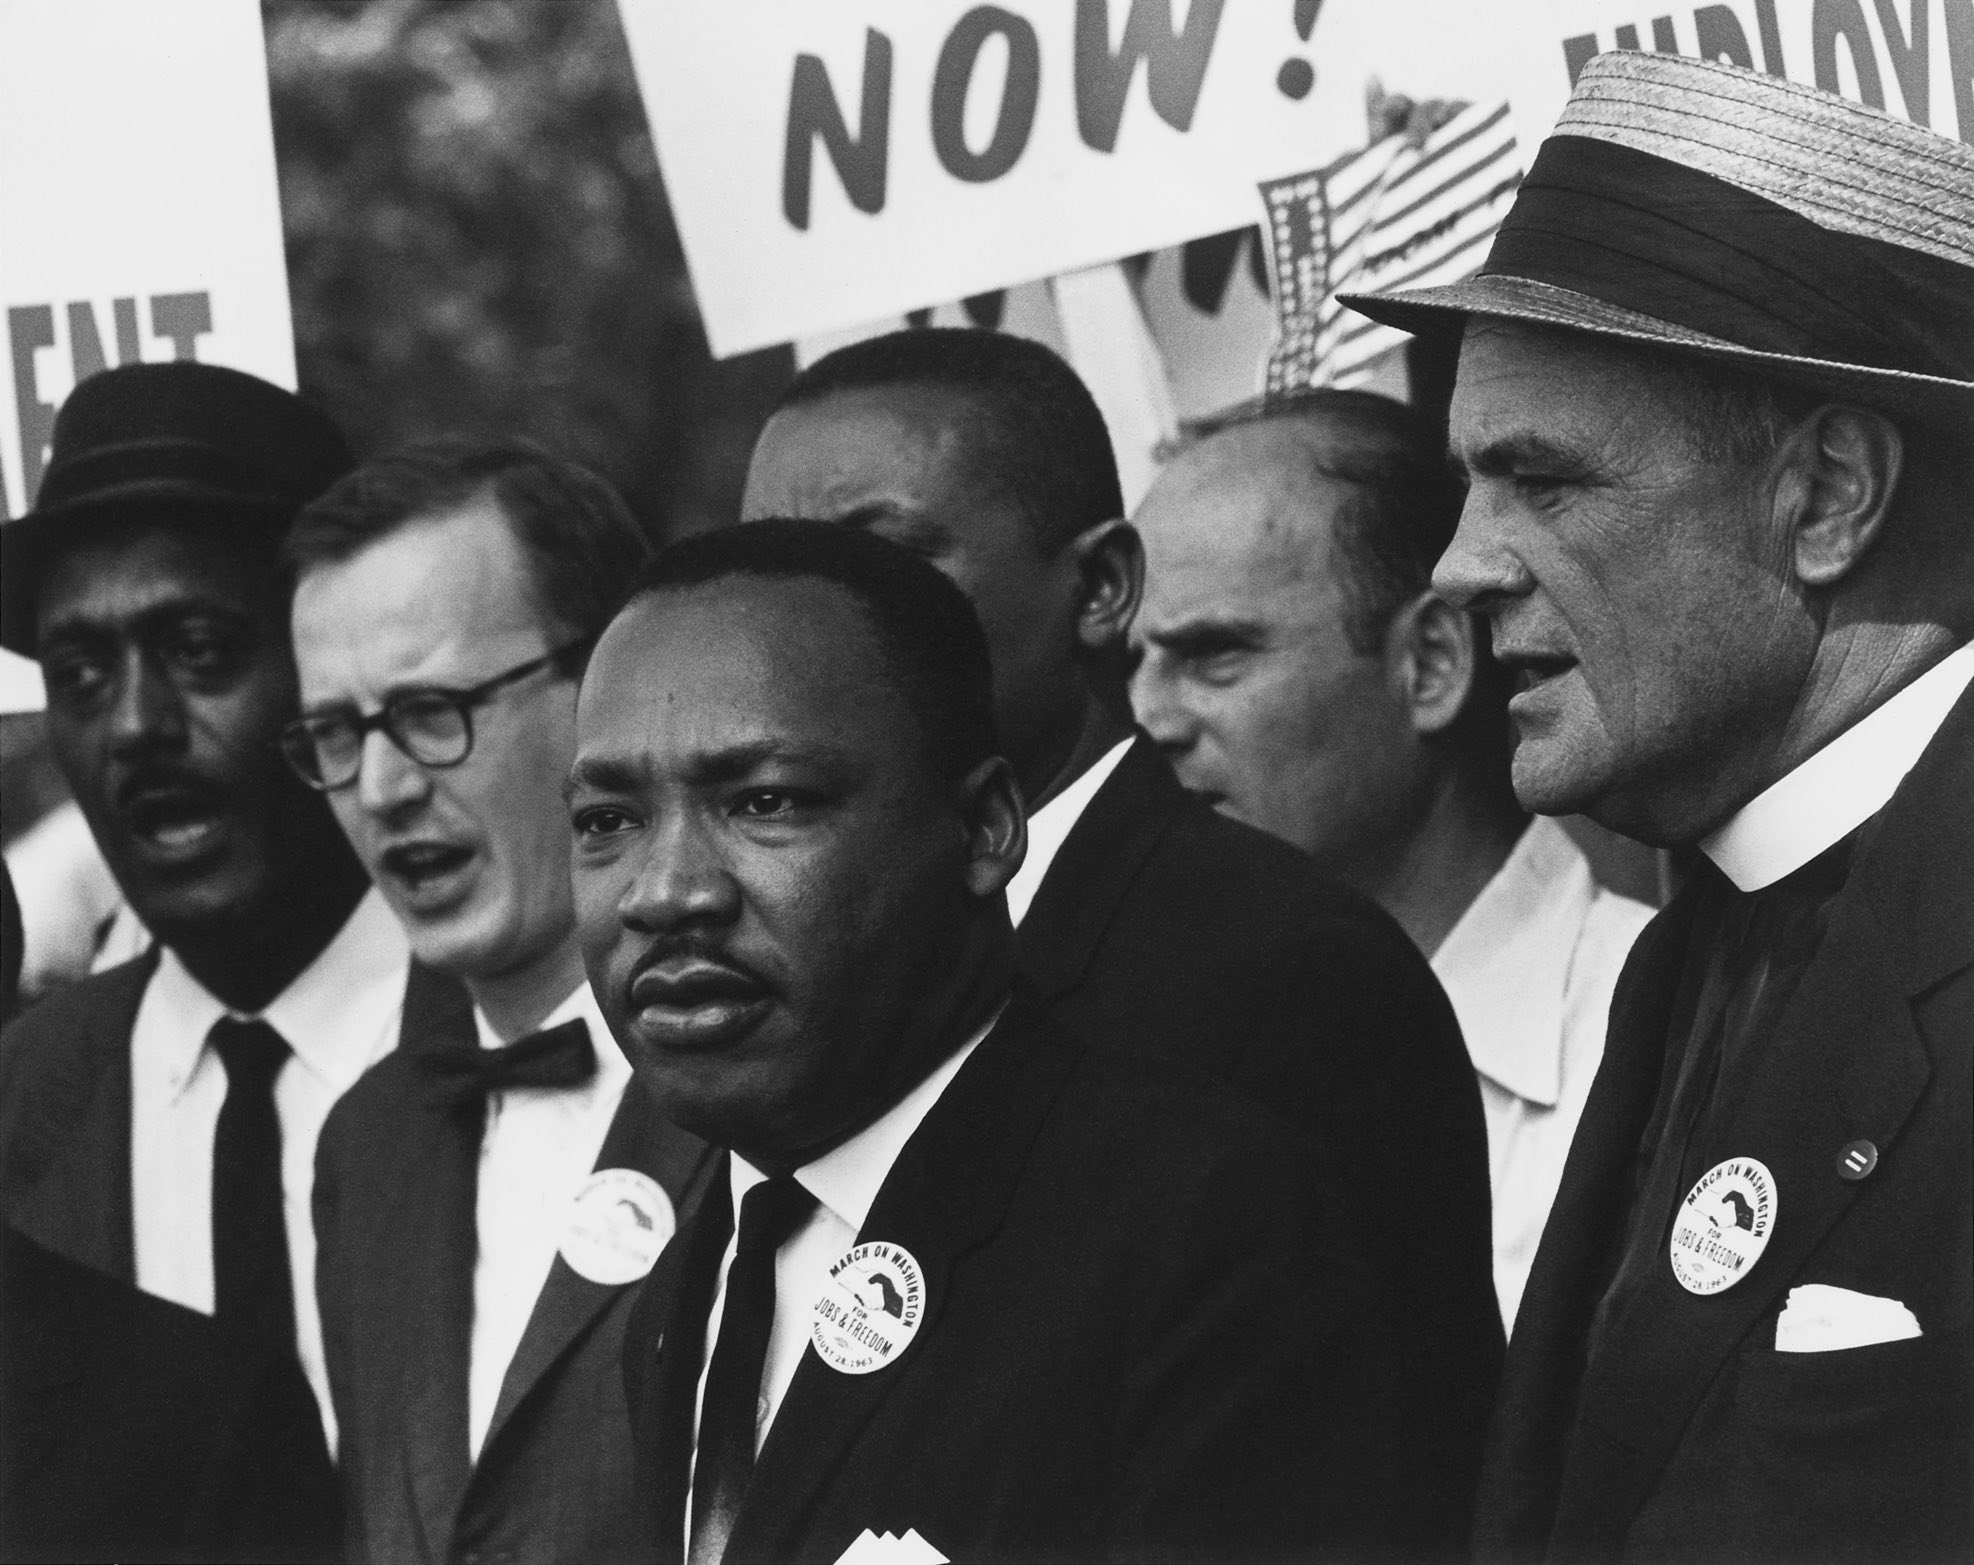 Martin Luther King Jr at a civil rights march. Credit: Wikimedia Commons